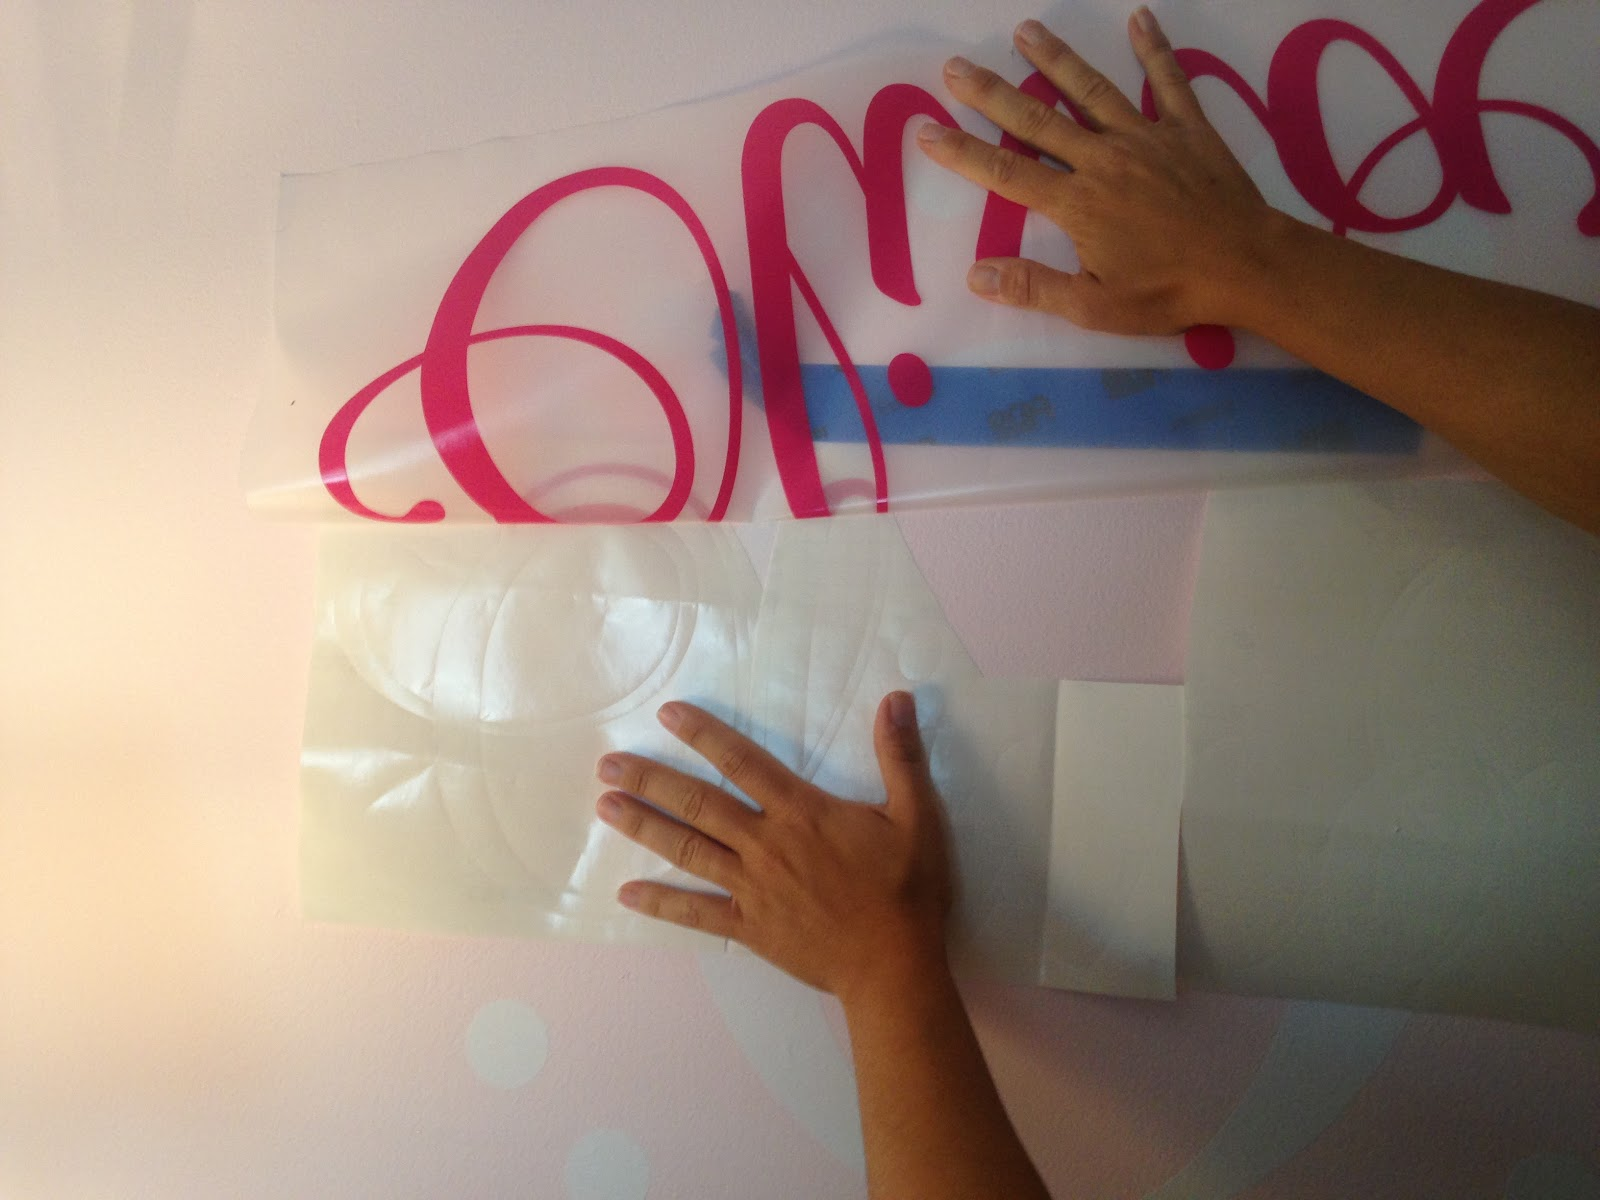 How To Hang A Large Vinyl Wall Decal Silhouette Tutorial Part - How to make vinyl decals by hand